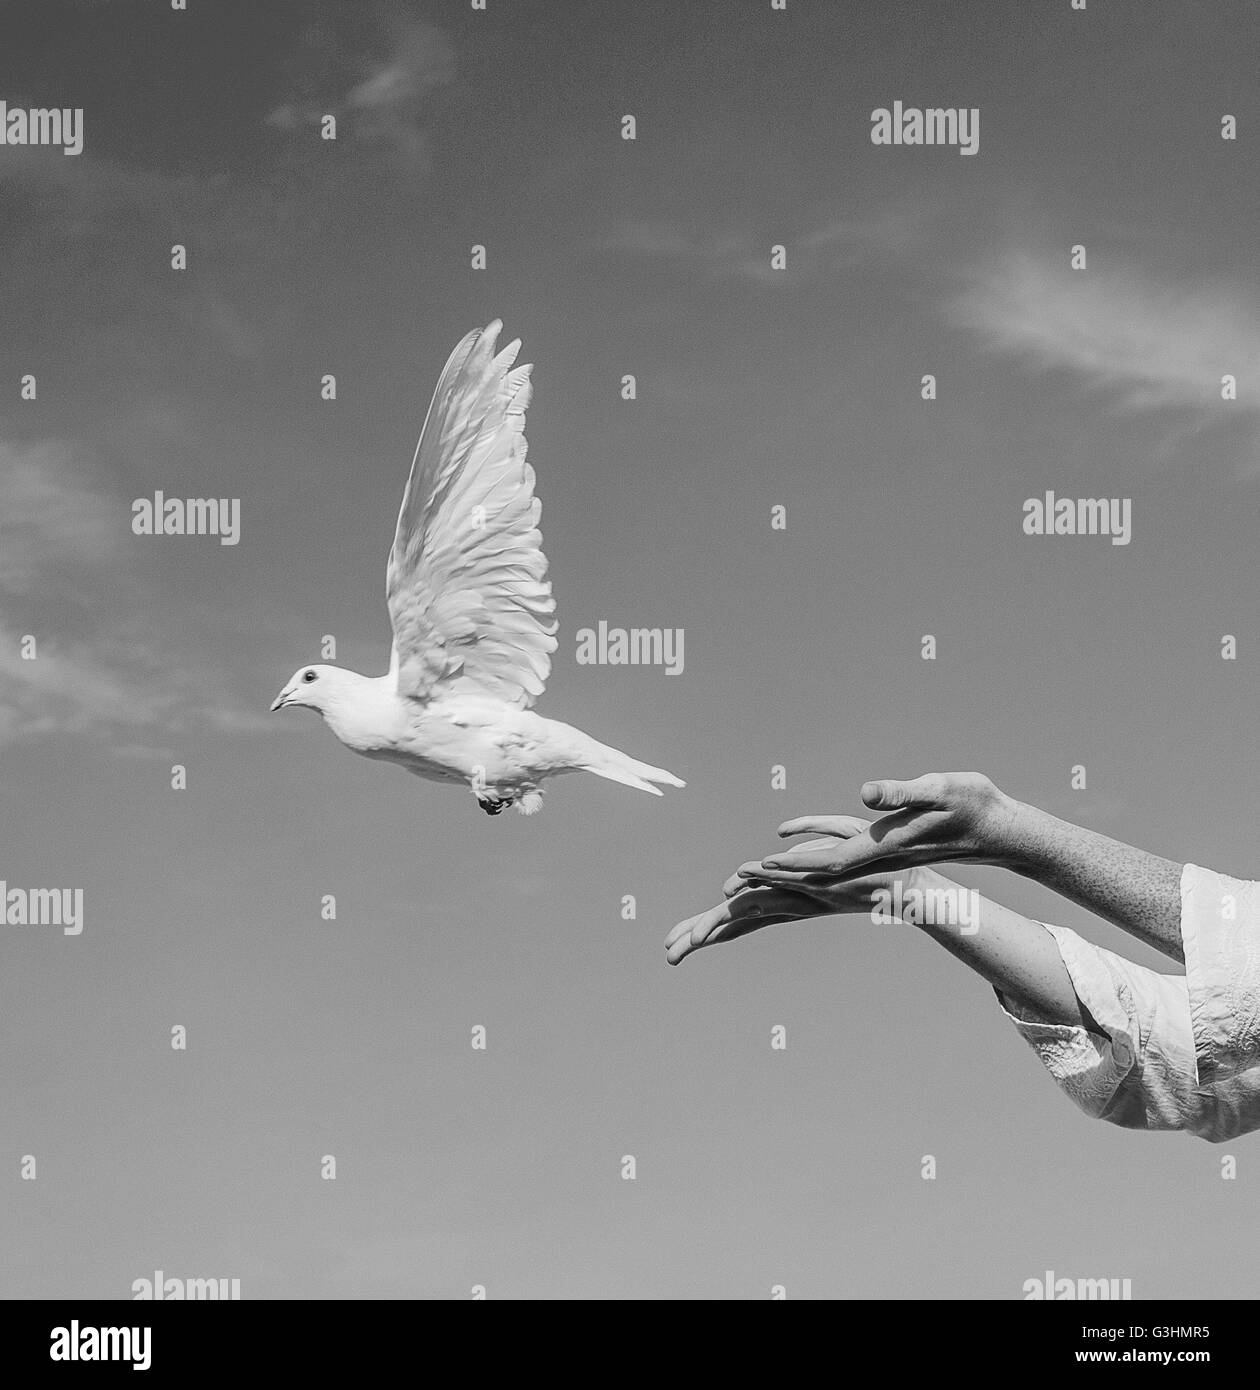 Woman releasing white dove into sky - Stock Image